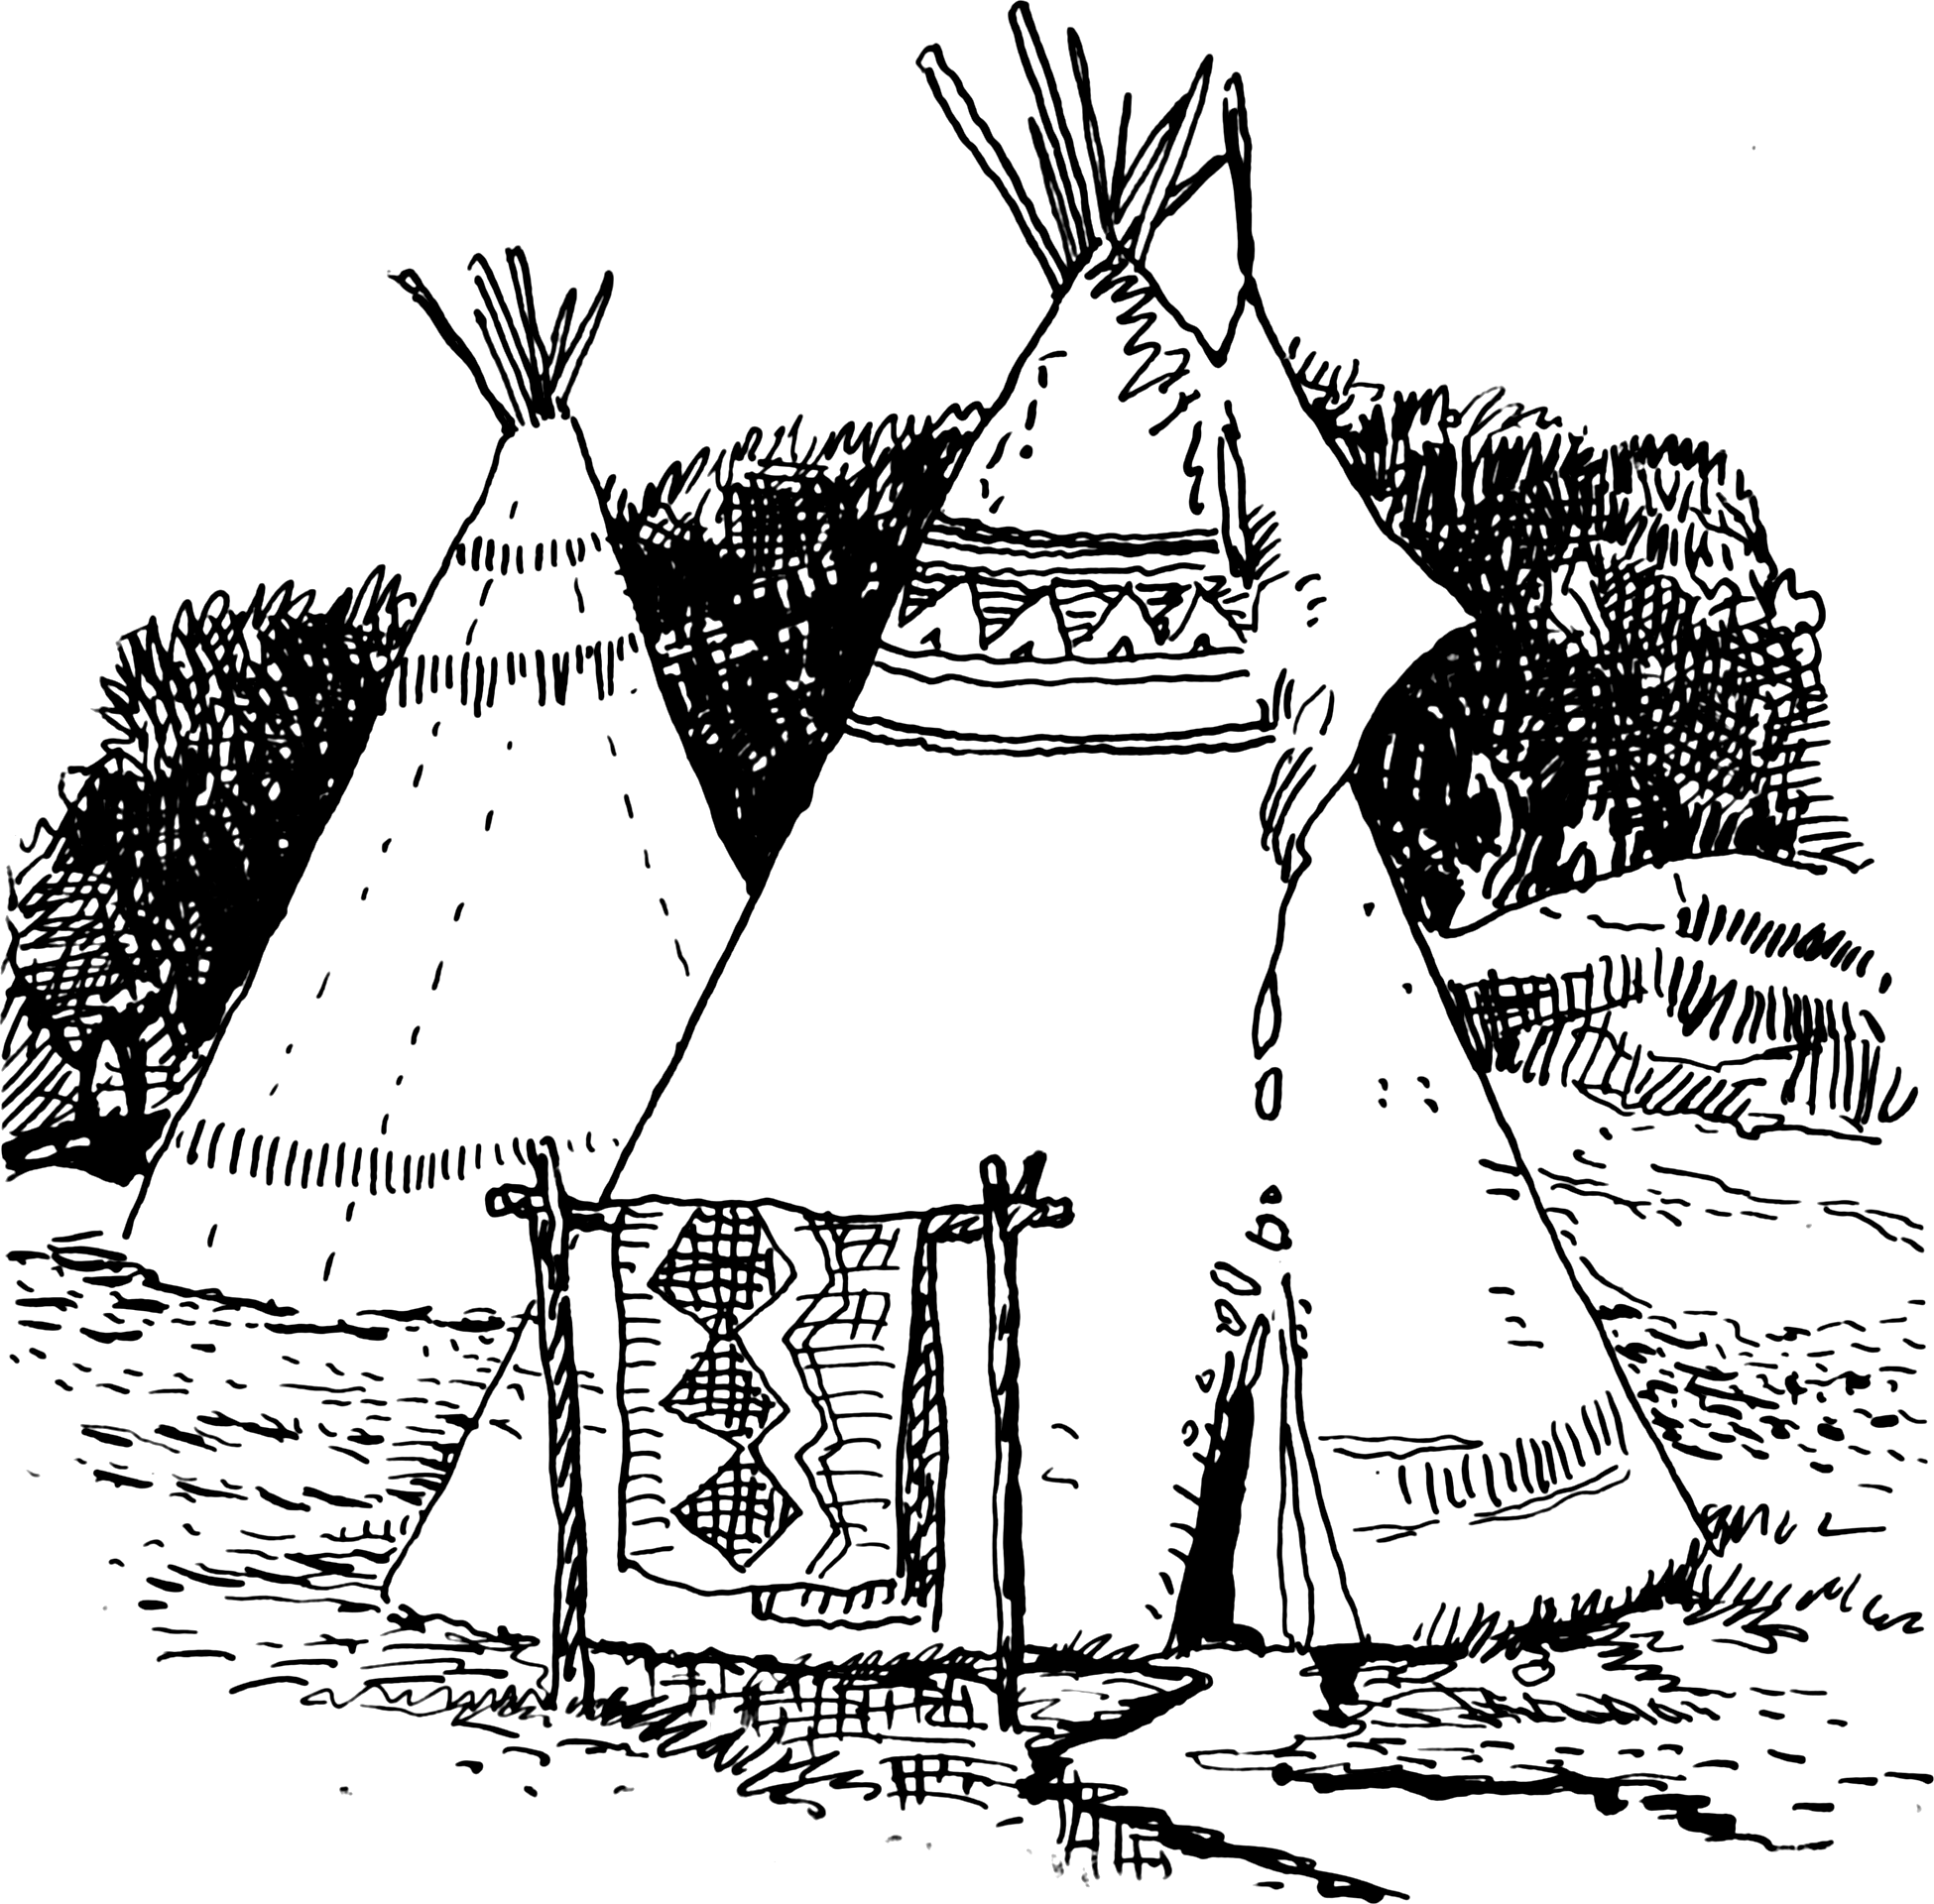 a description of the tepee Description canvas/fabric skin (representativeof materials used by the 19th century plains indians) that you decorate with your favorite designs and symbols.